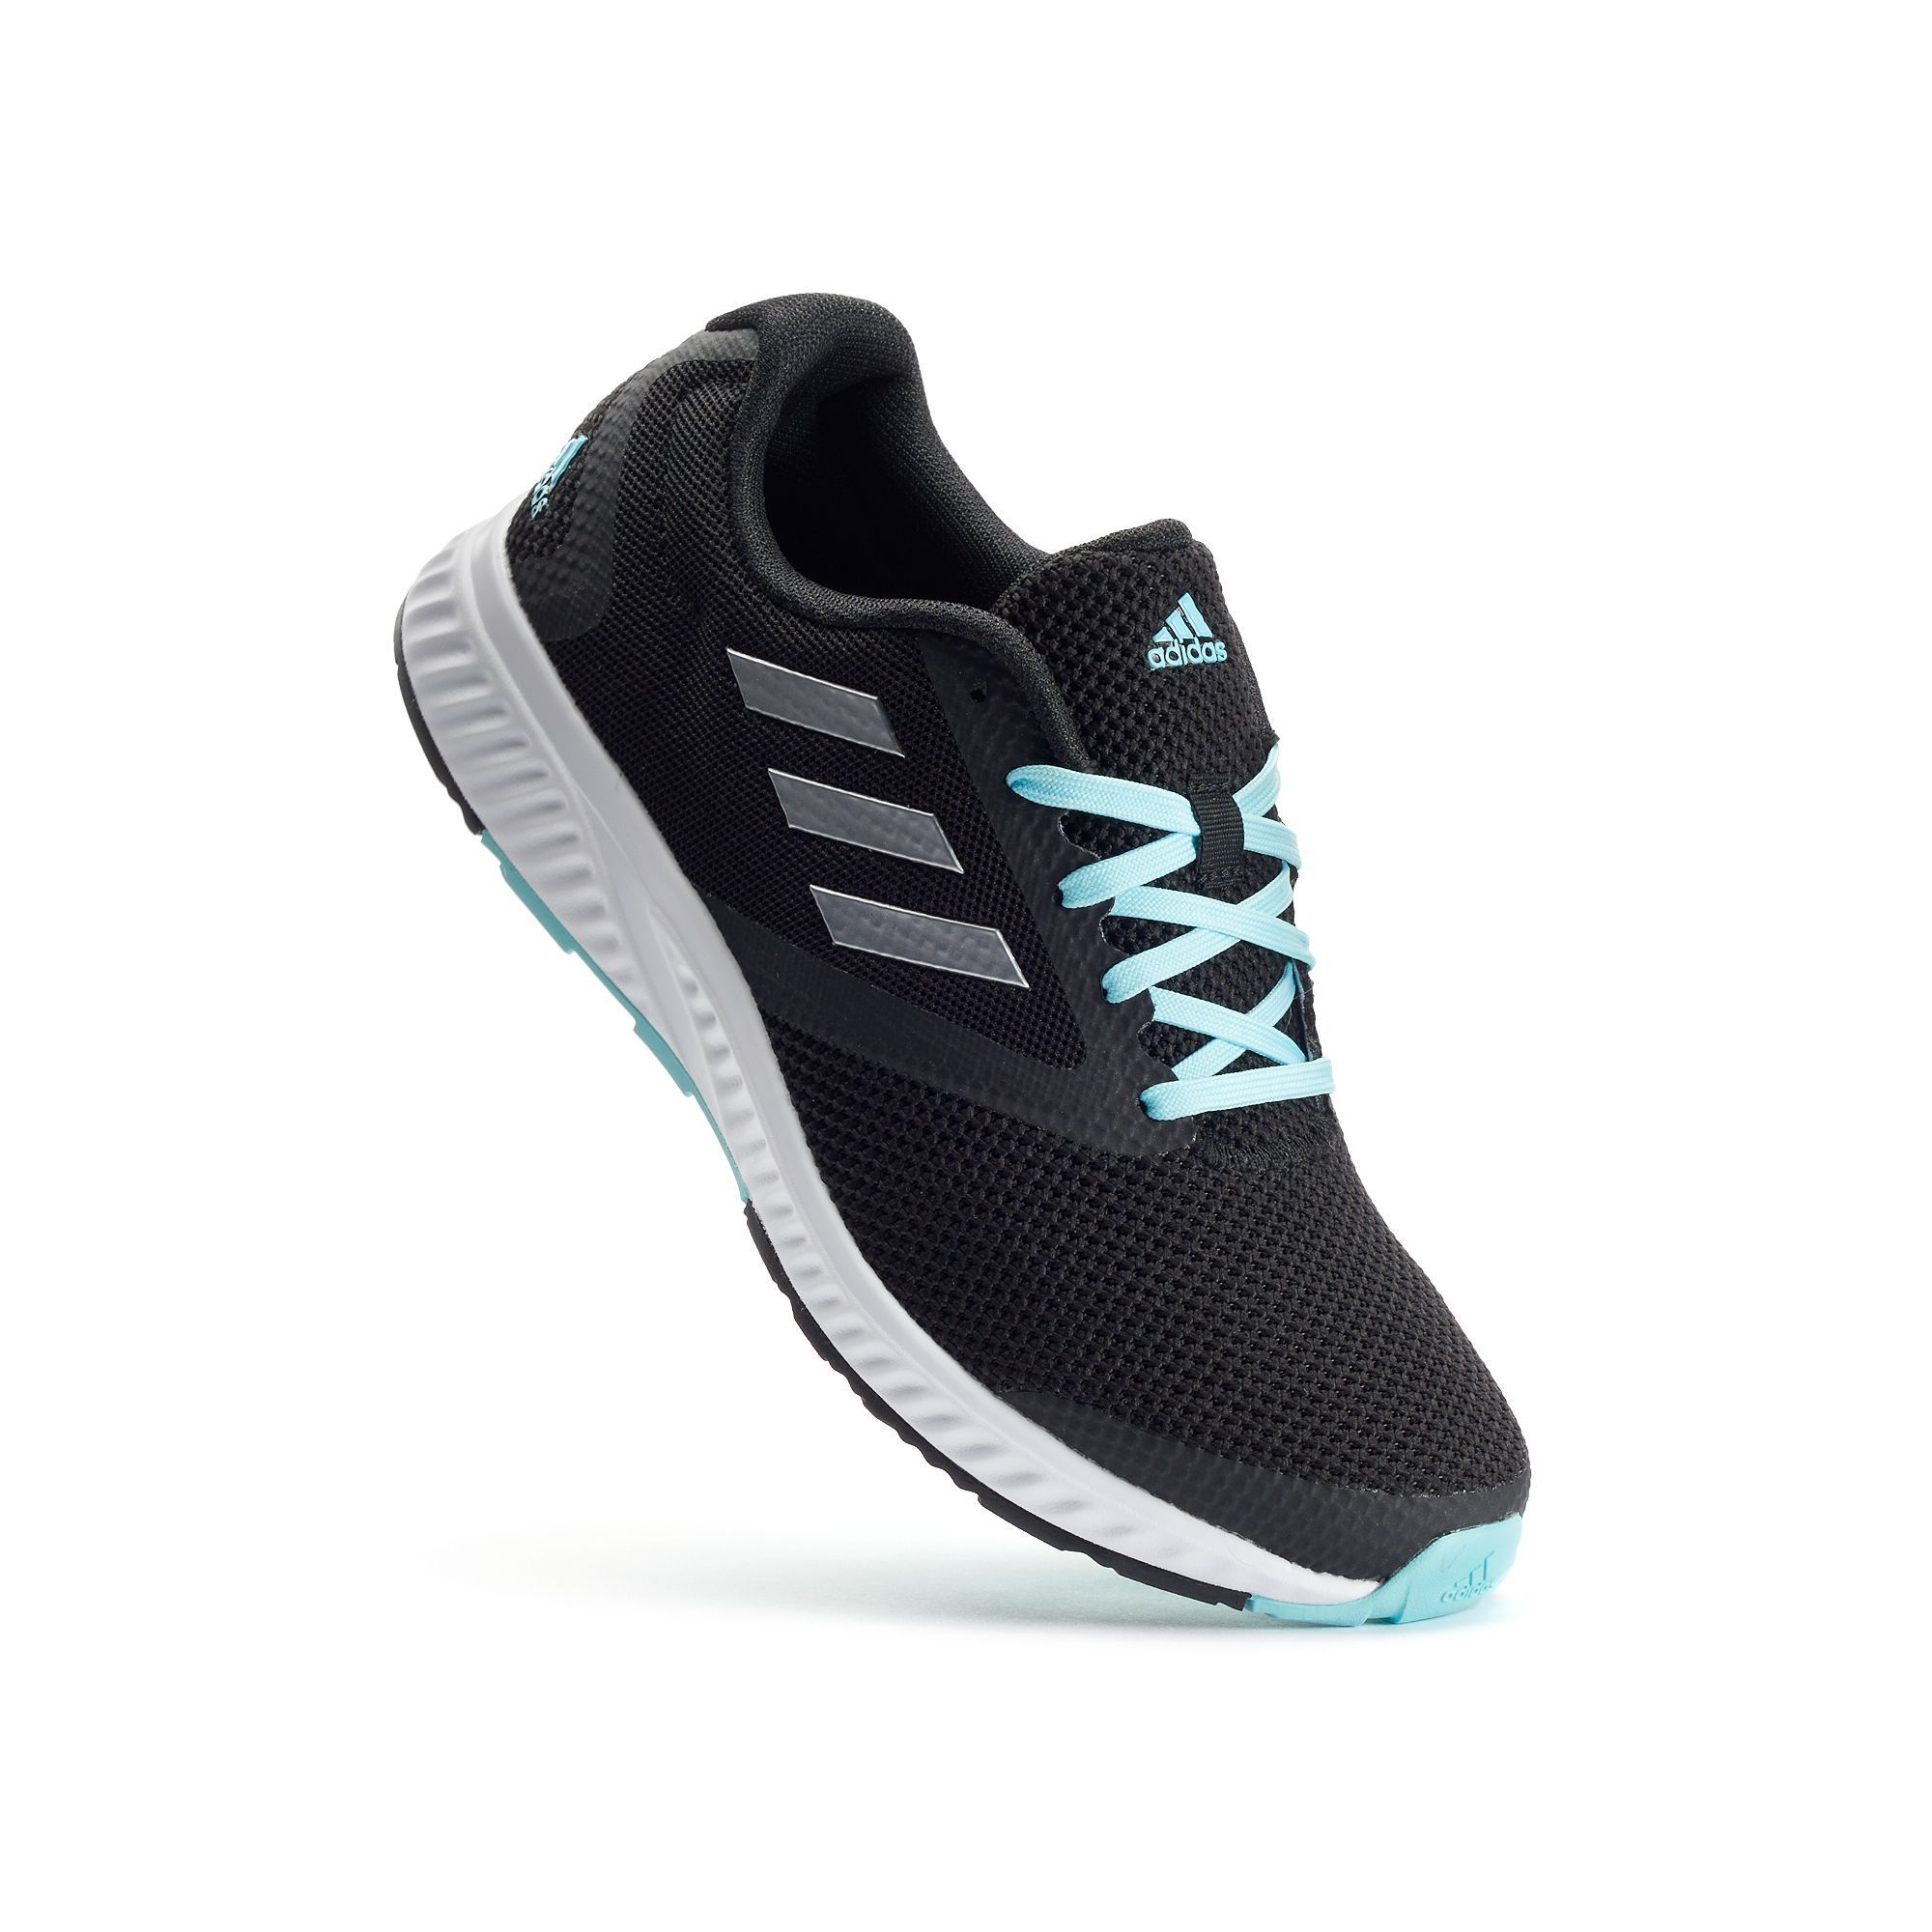 low priced 53870 6efd1 Adidas Edge RC Womens Running Shoes, Size 8.5, Black